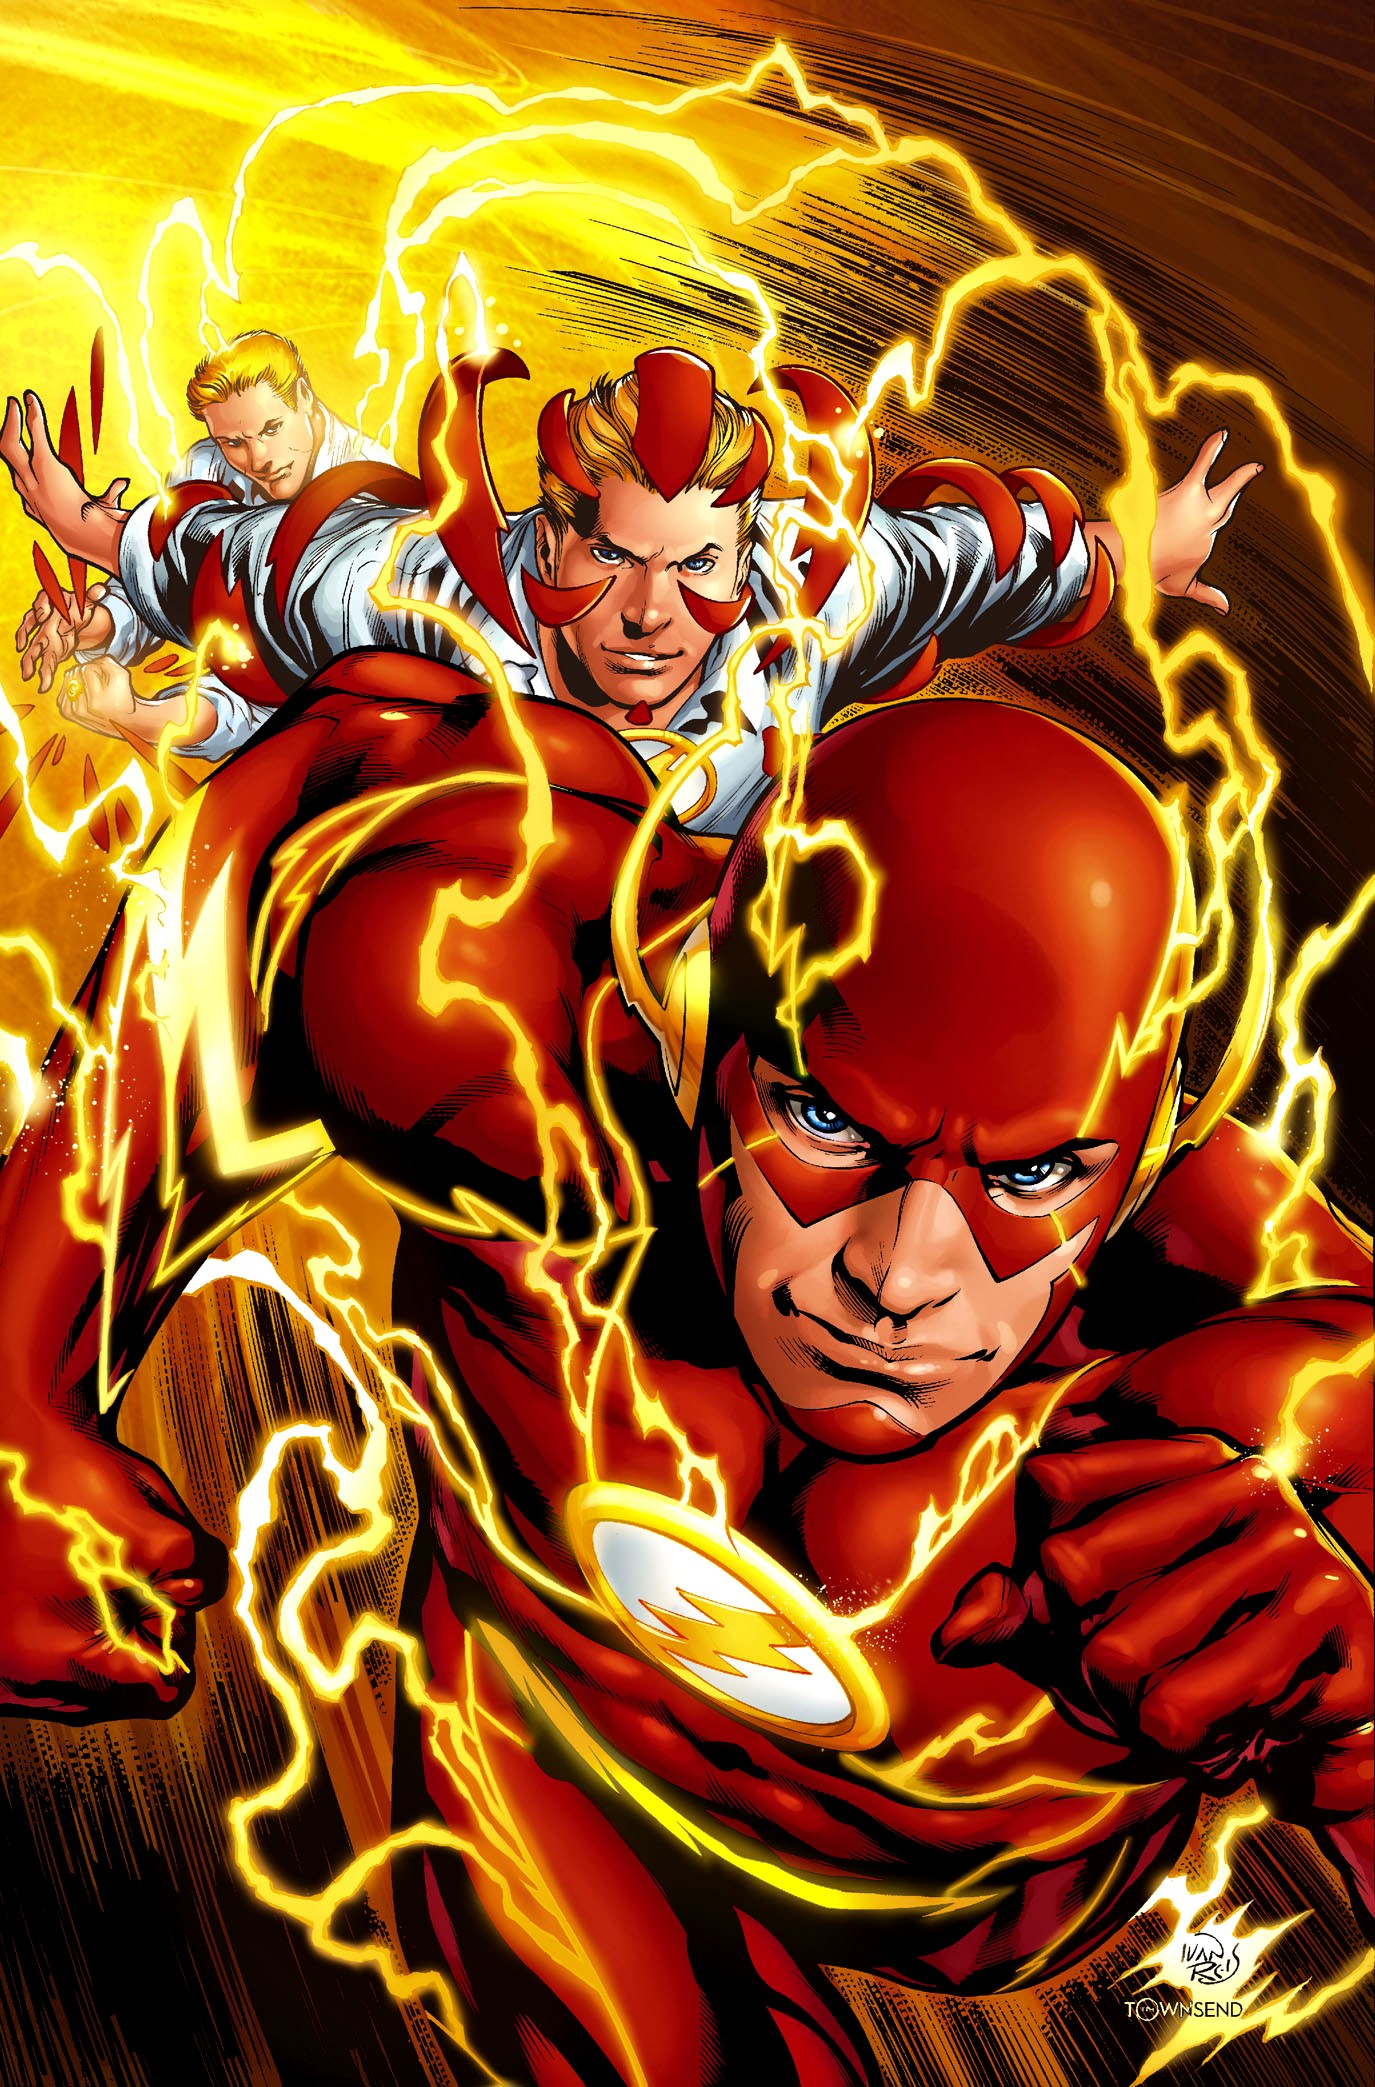 Who can answer questions about Flash(superhero)?